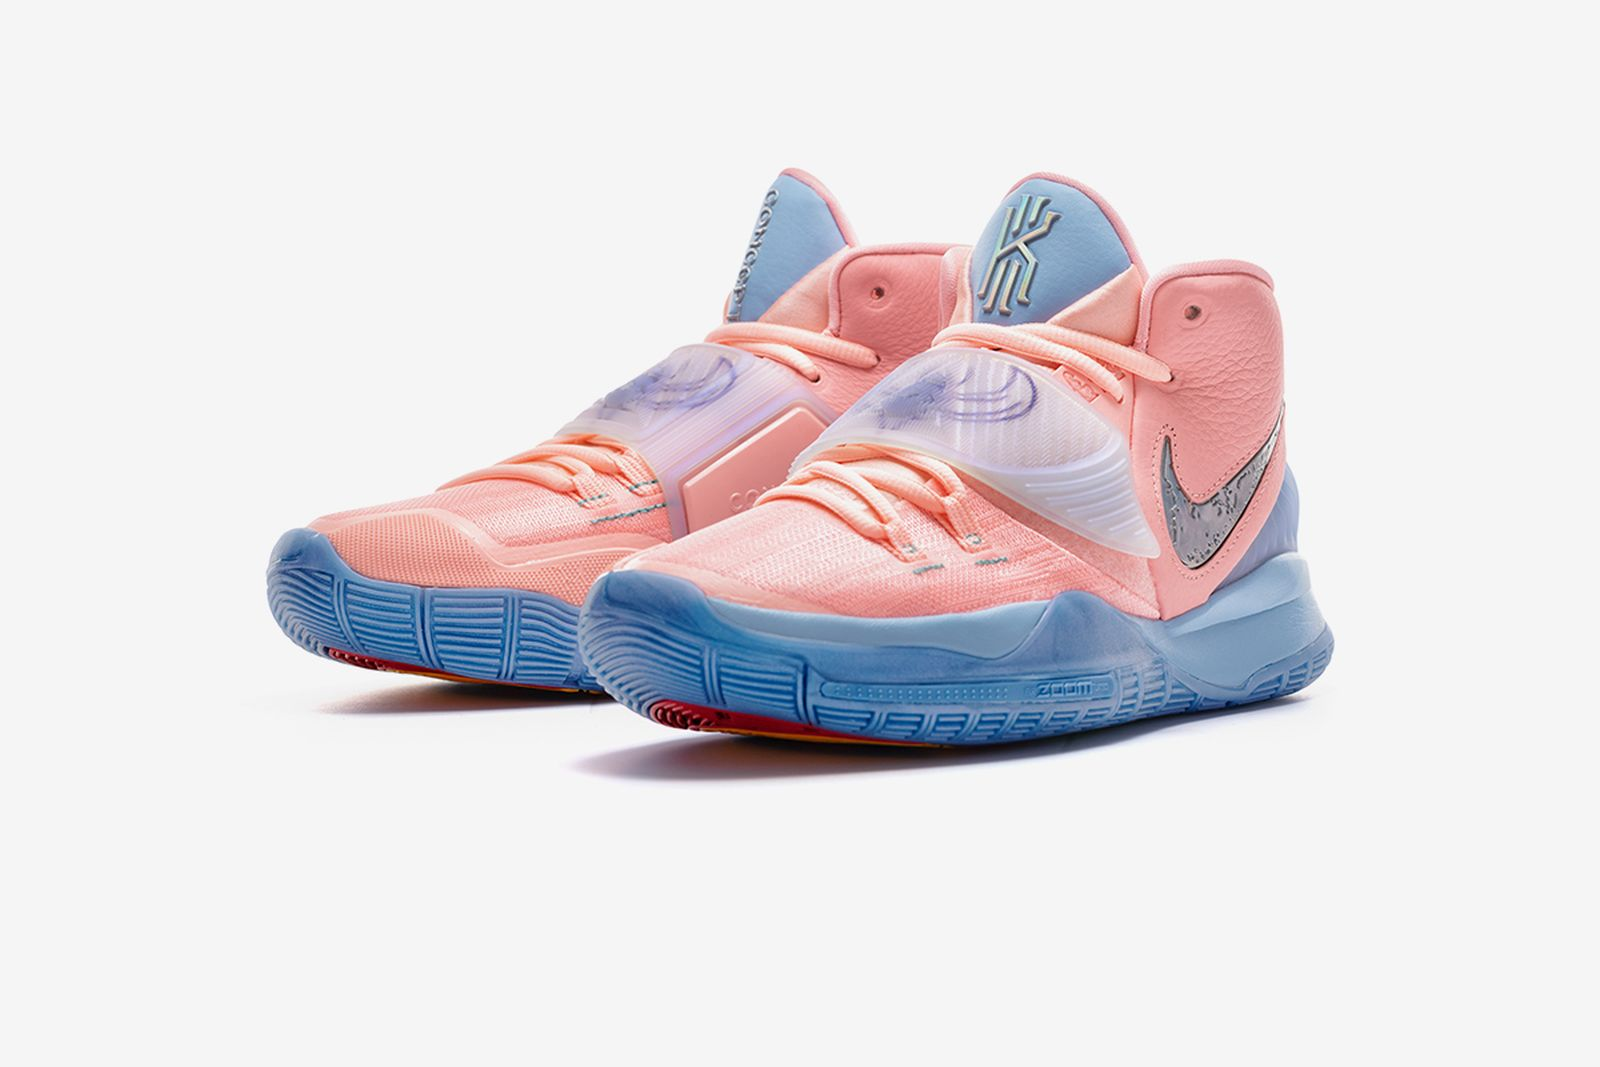 concepts-nike-kyrie-6-release-date-price-19